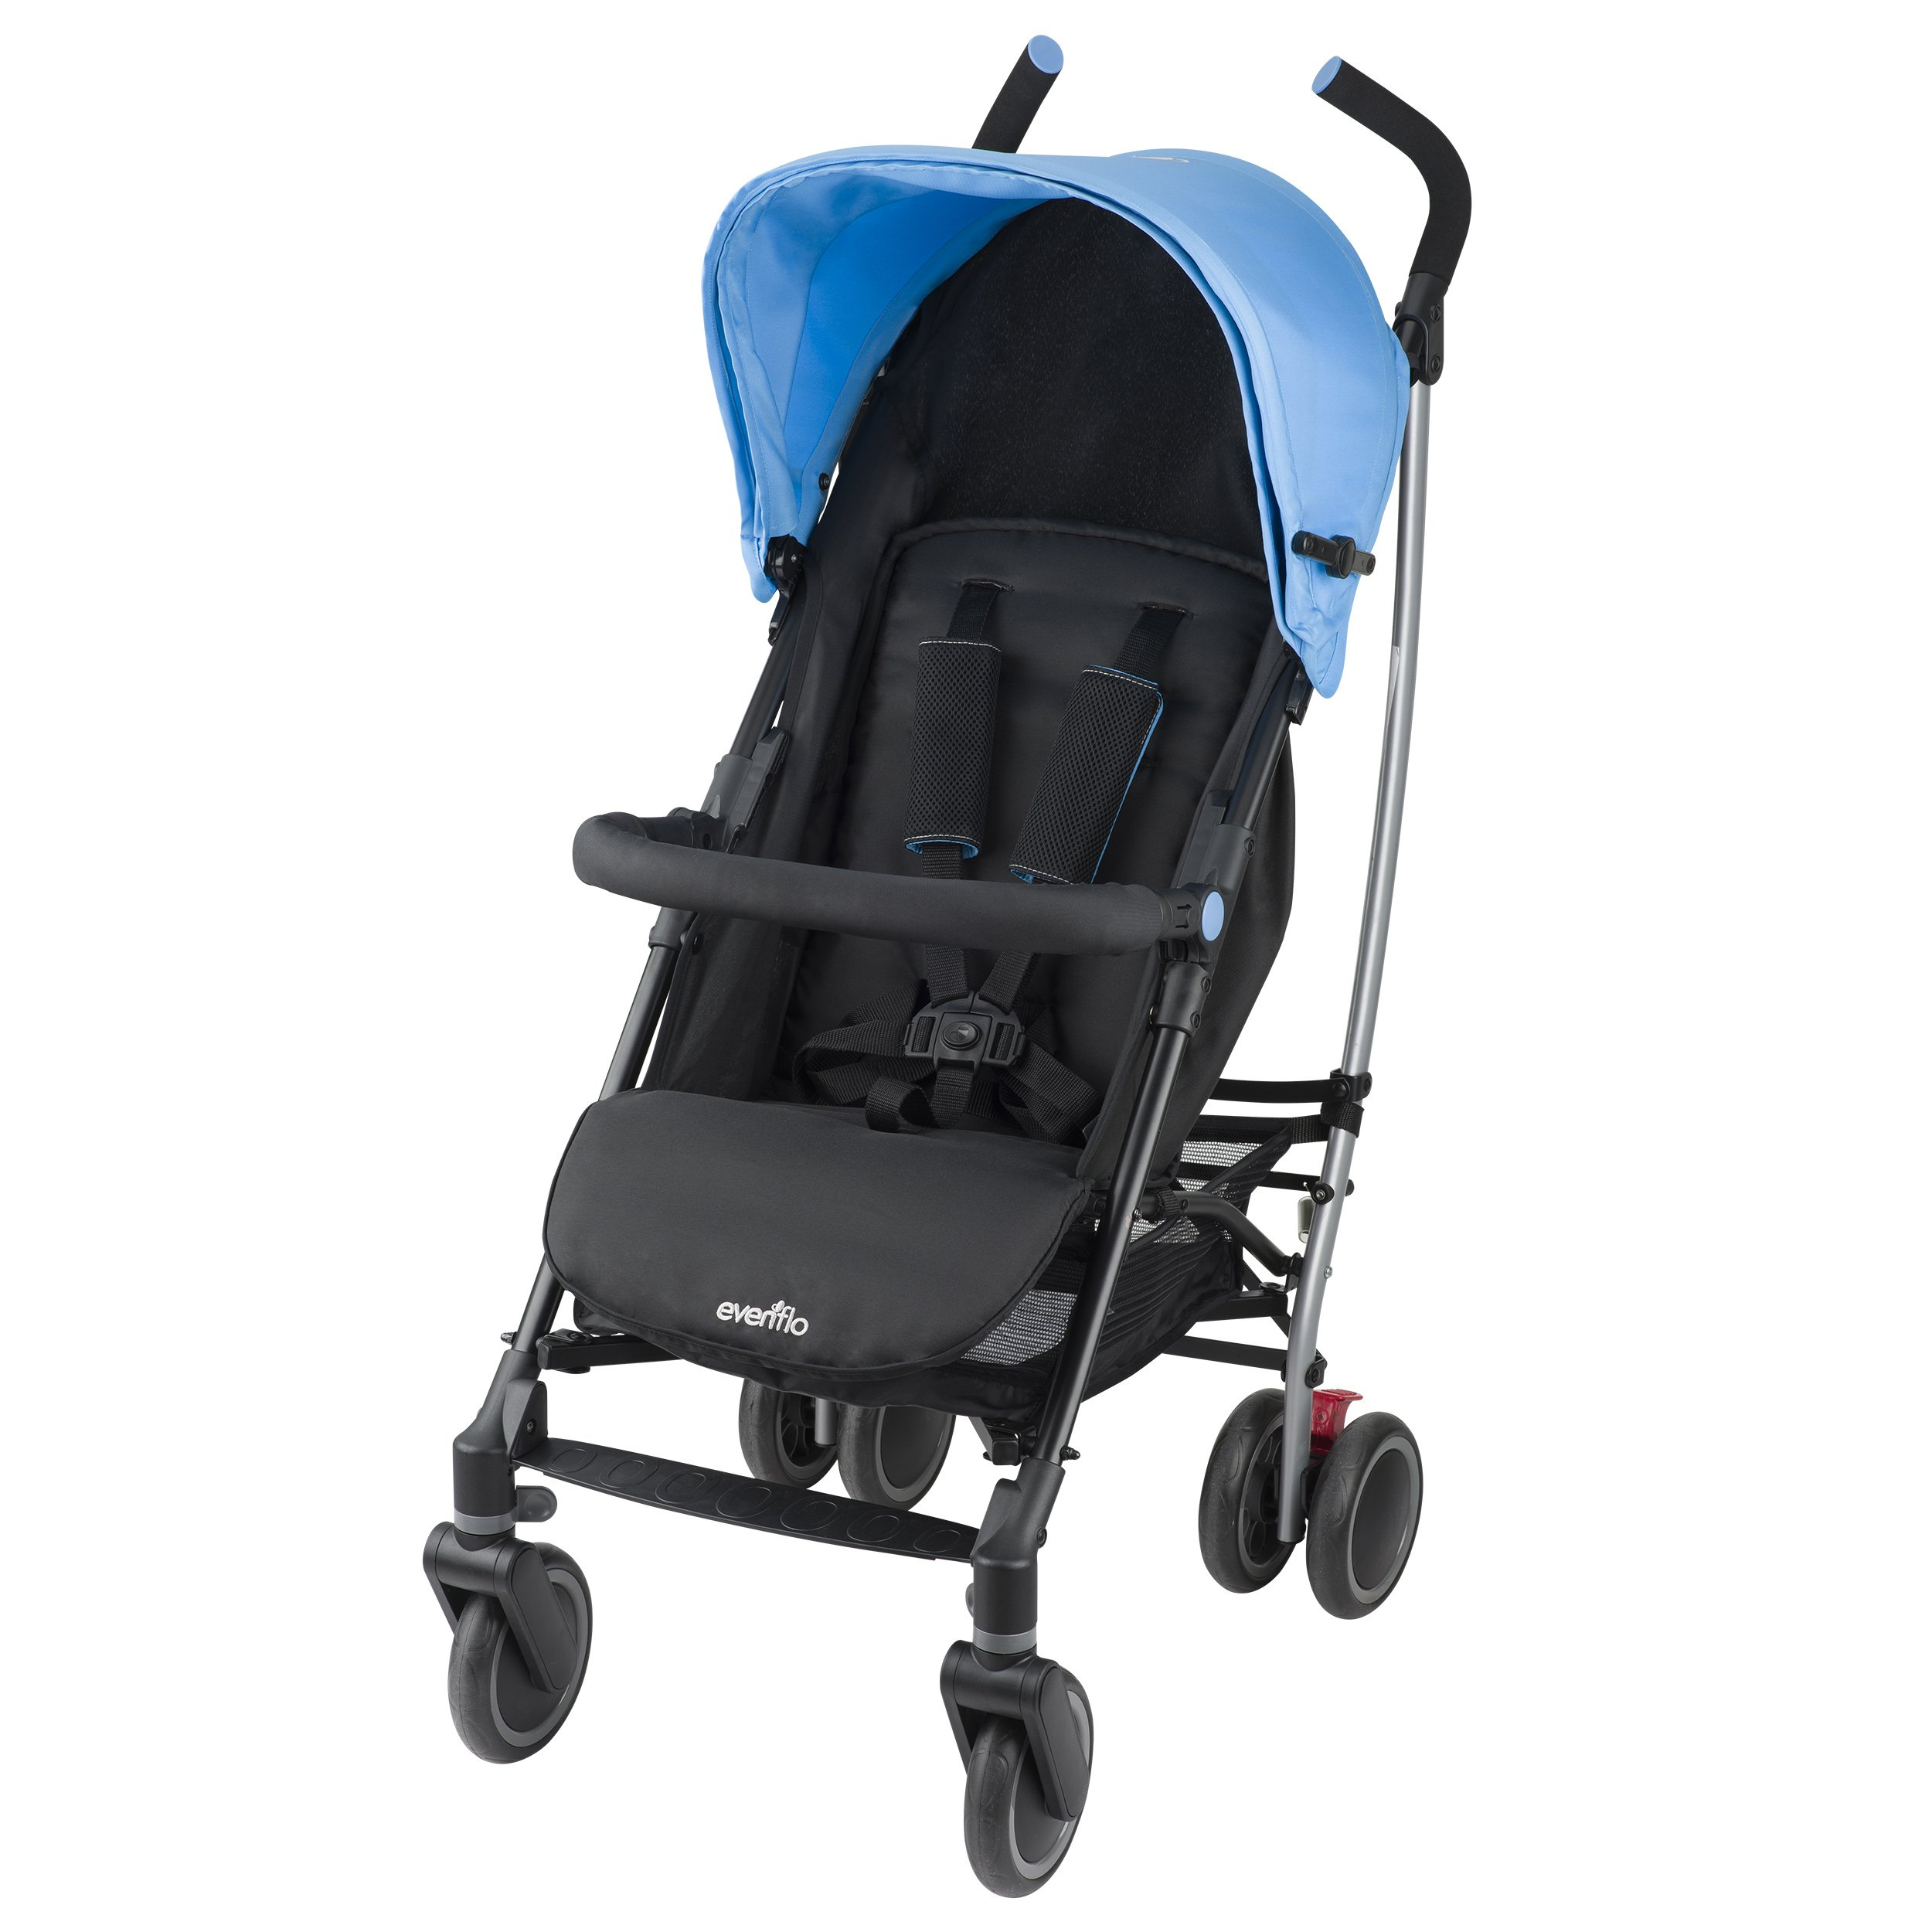 Evenflo Cambridge Stroller, Sky Blue by Evenflo (Image #1)